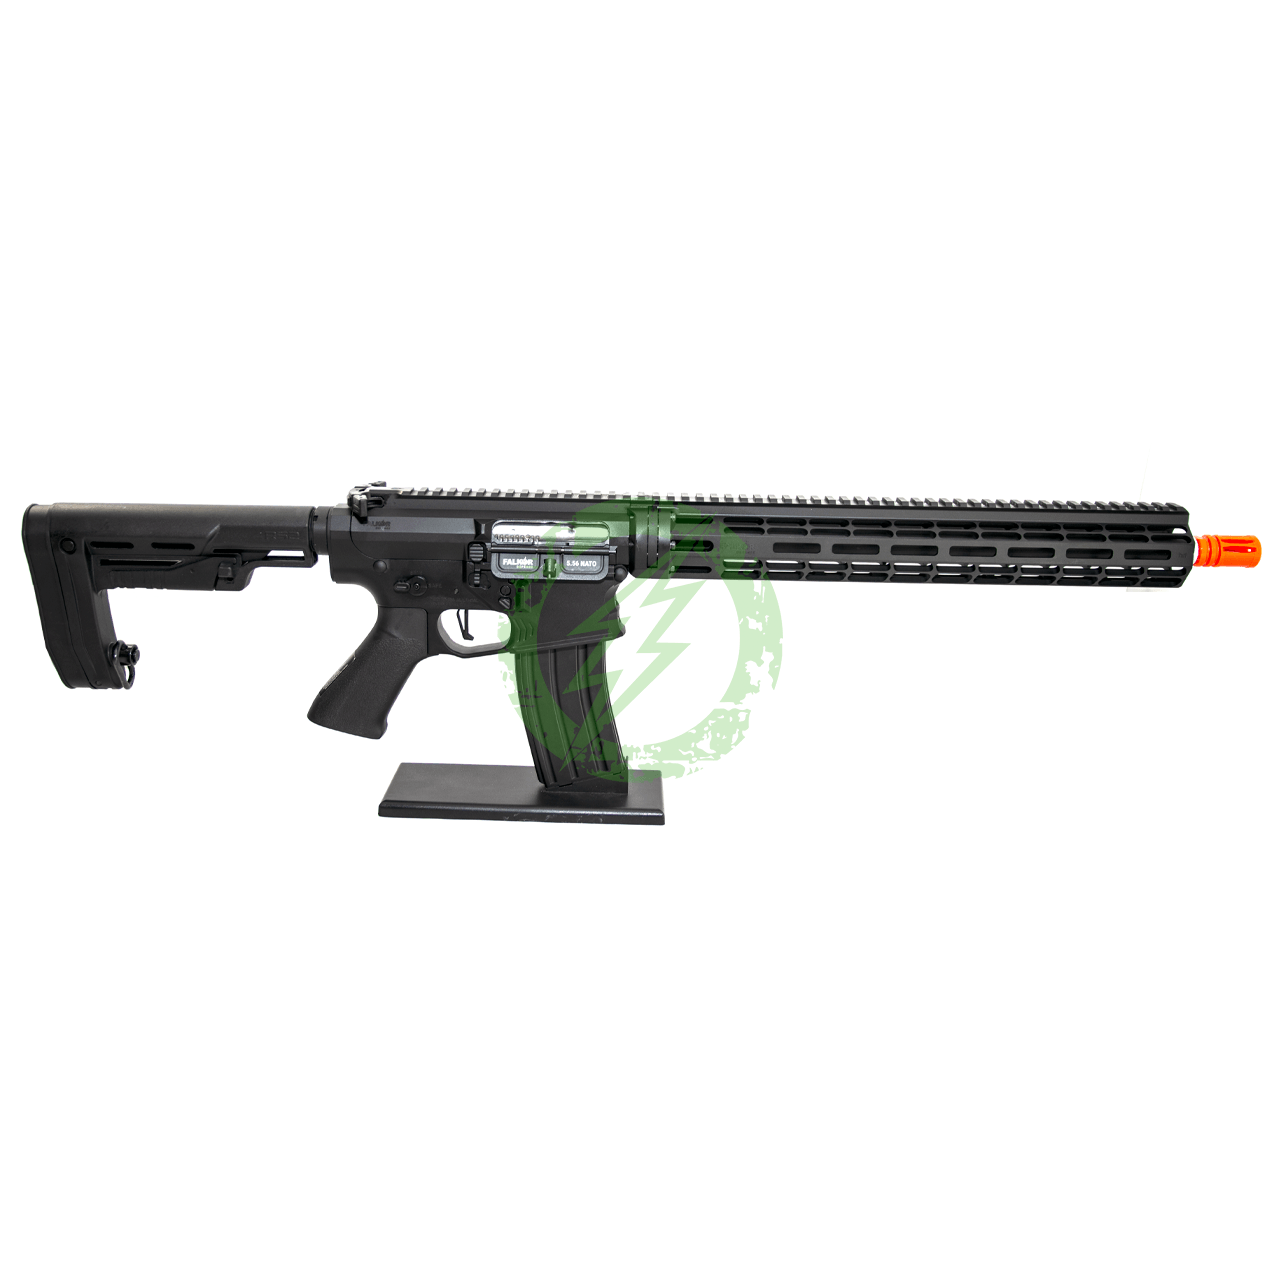 EMG Black Out Falkor AR-15 RECCE Training Weapon